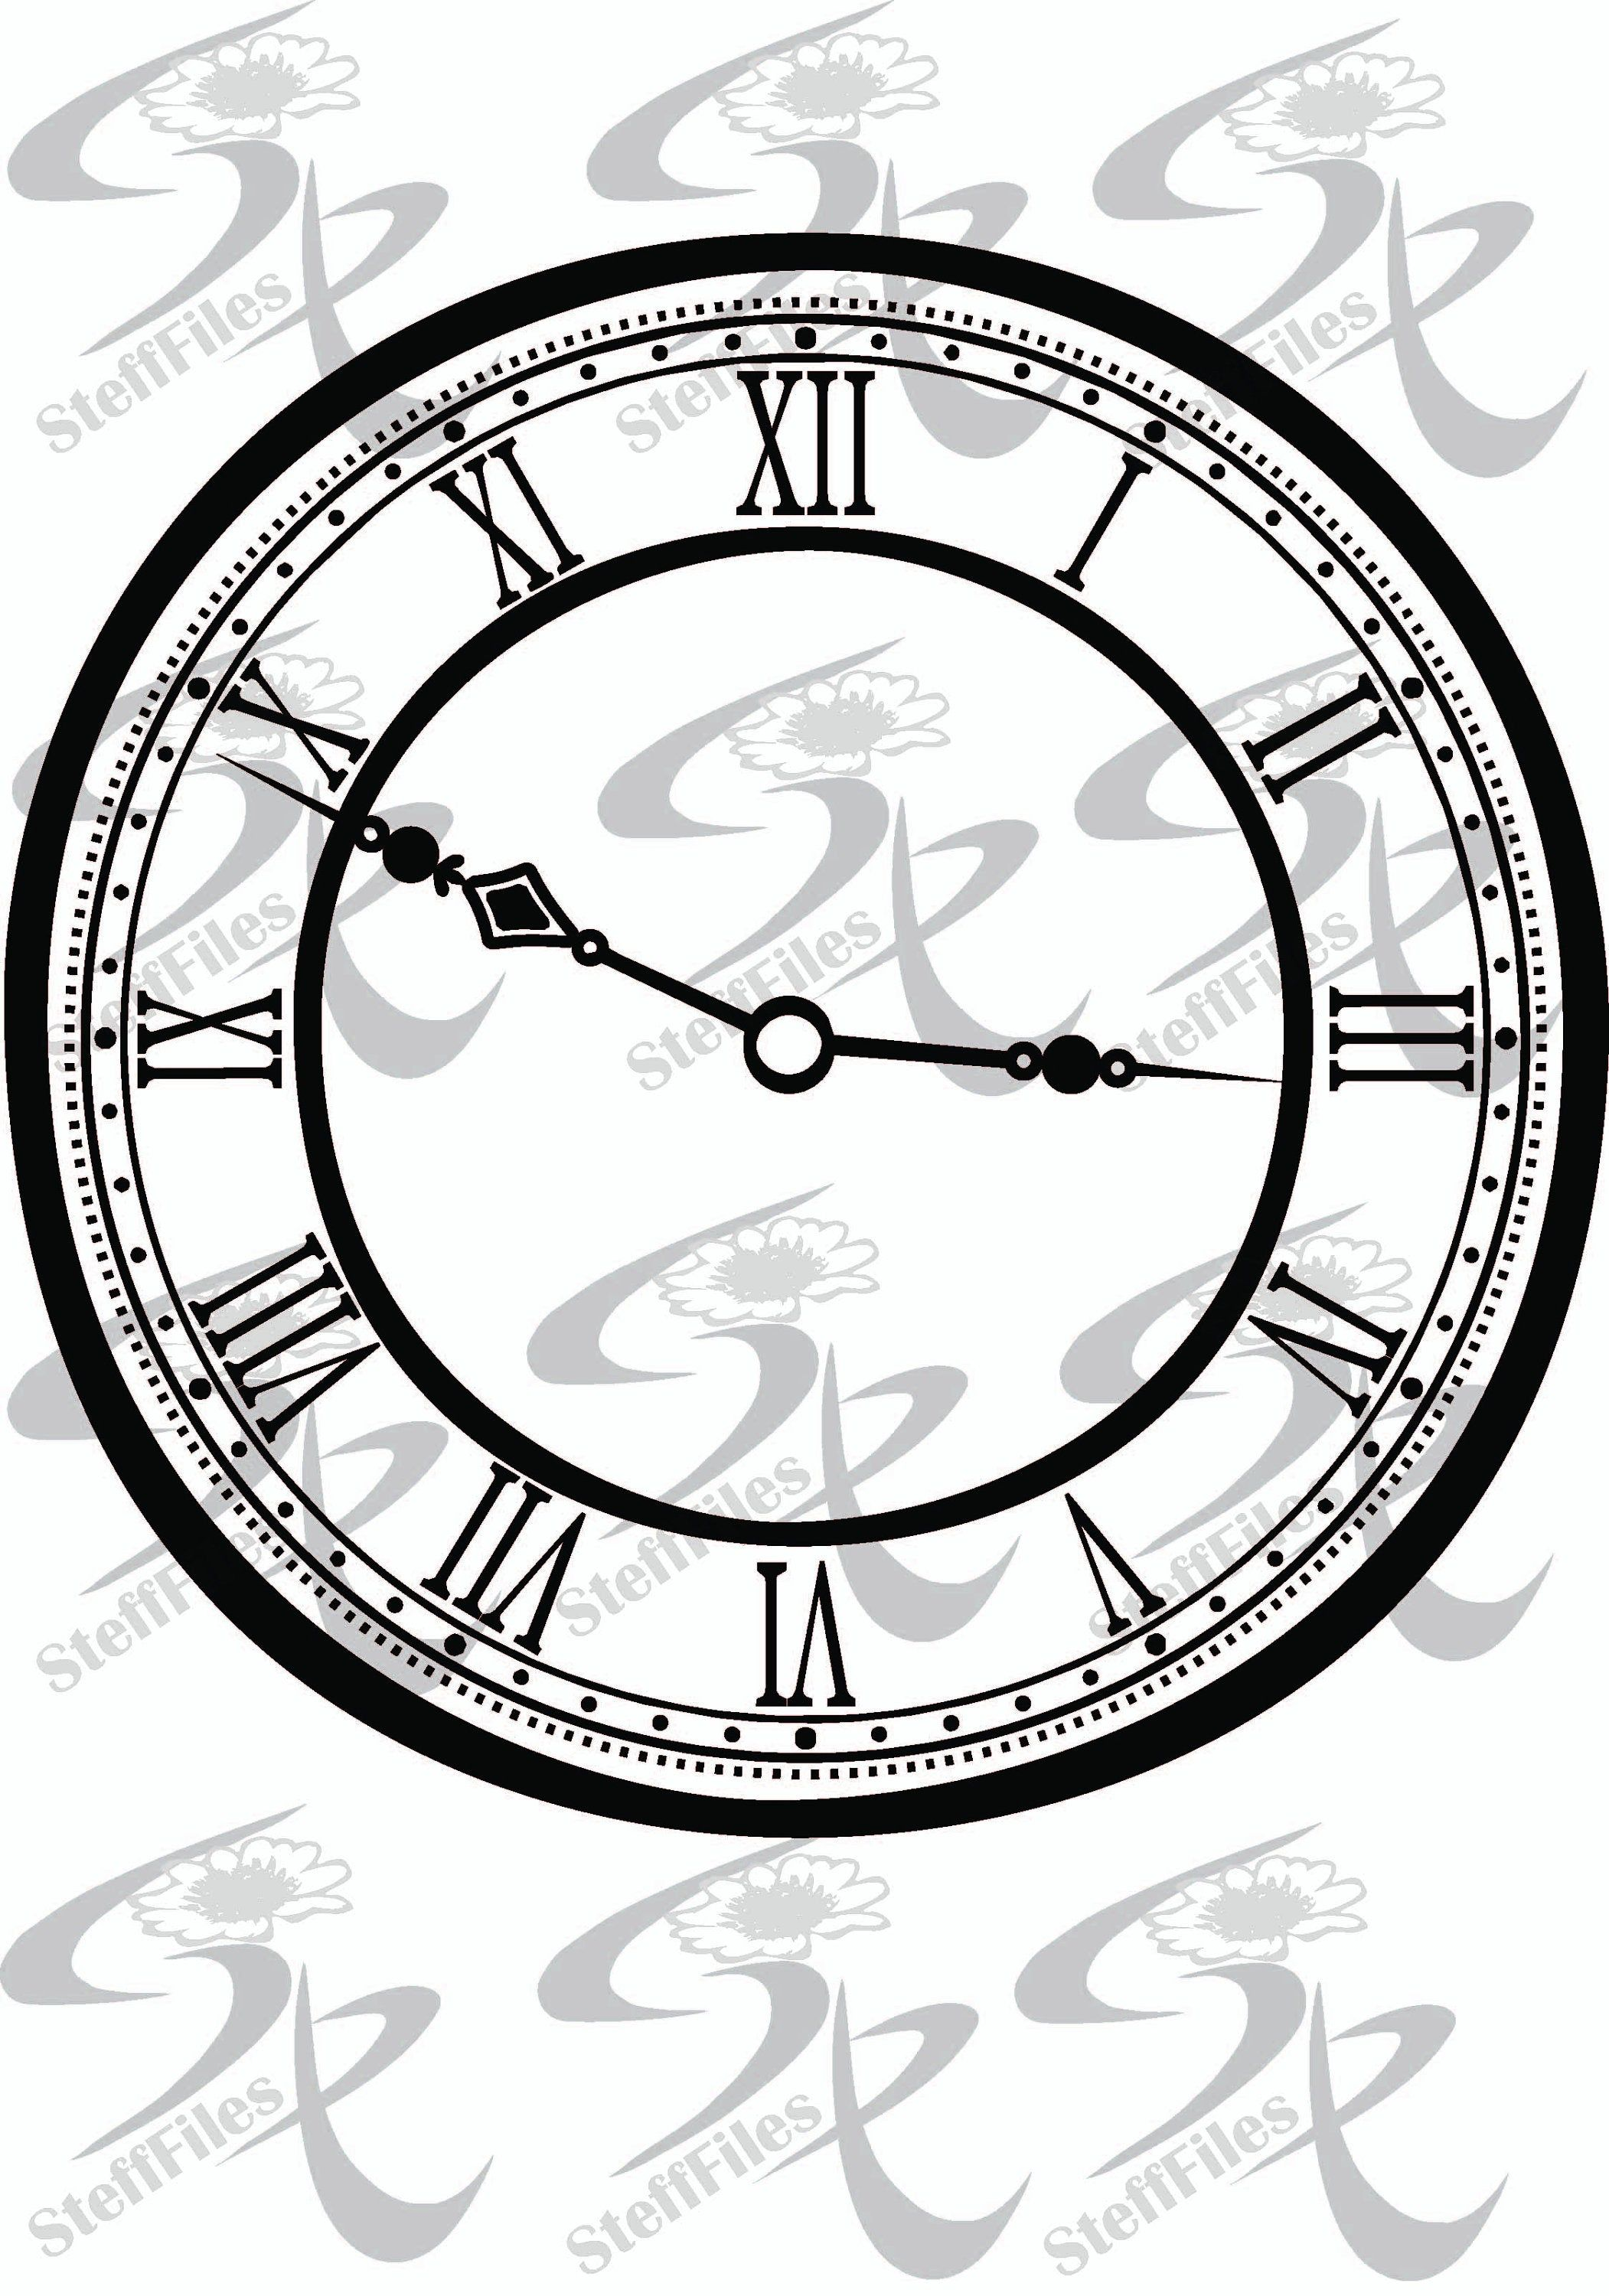 Vector Clock Face Digital Image clipart,SVG,dxf,ai, png